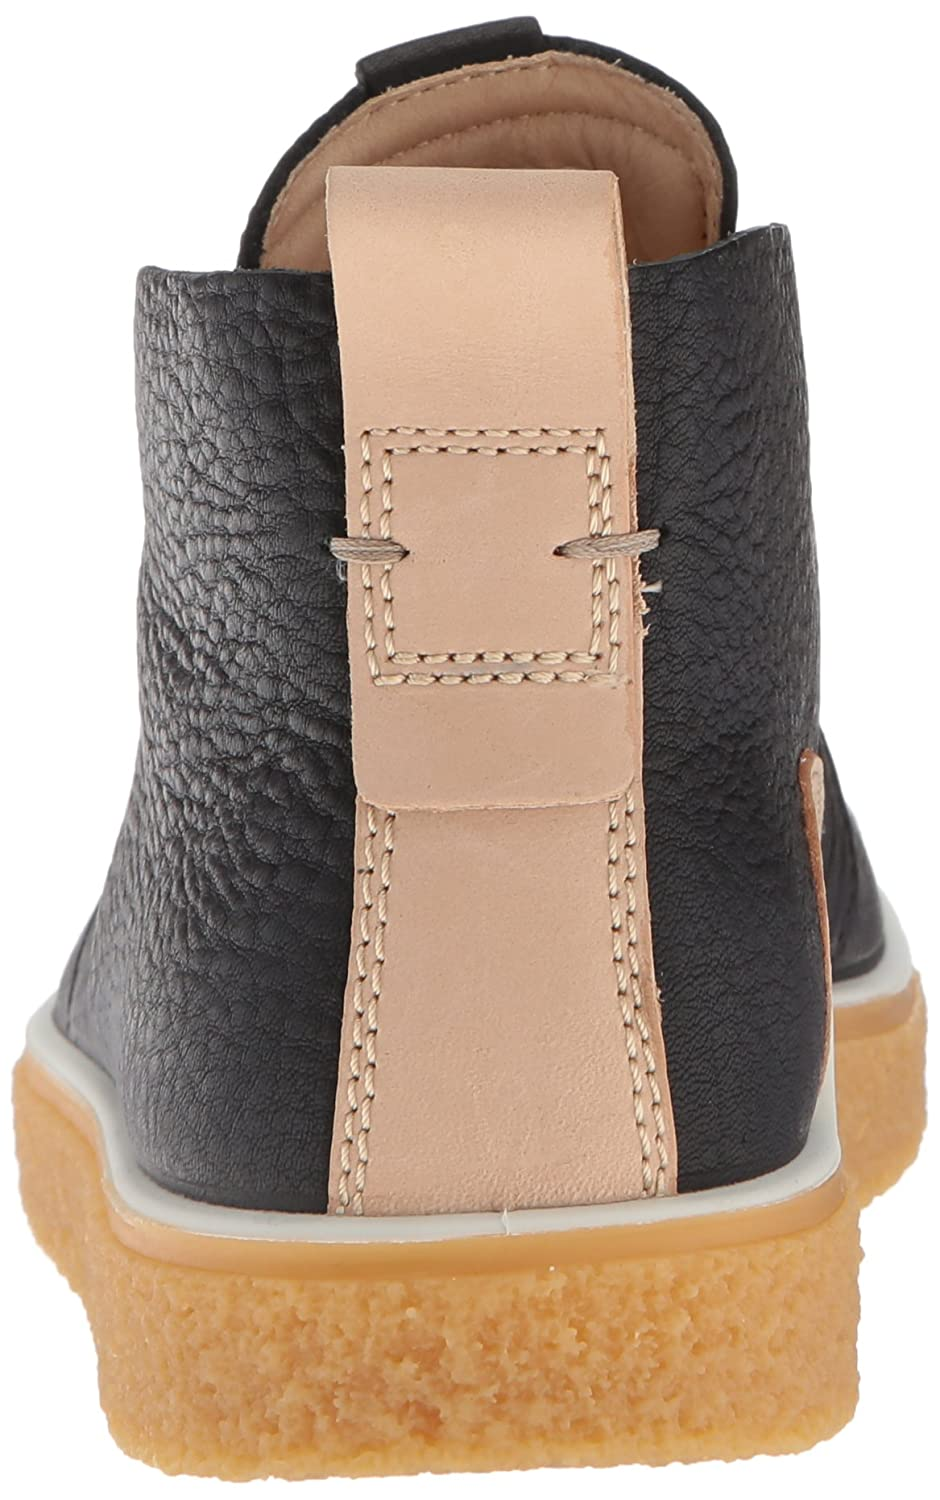 ECCO Women's Women's Crepetray Bootie Ankle Boot B074DNPS85 40 Medium EU (9-9.5 US)|Black/Powder